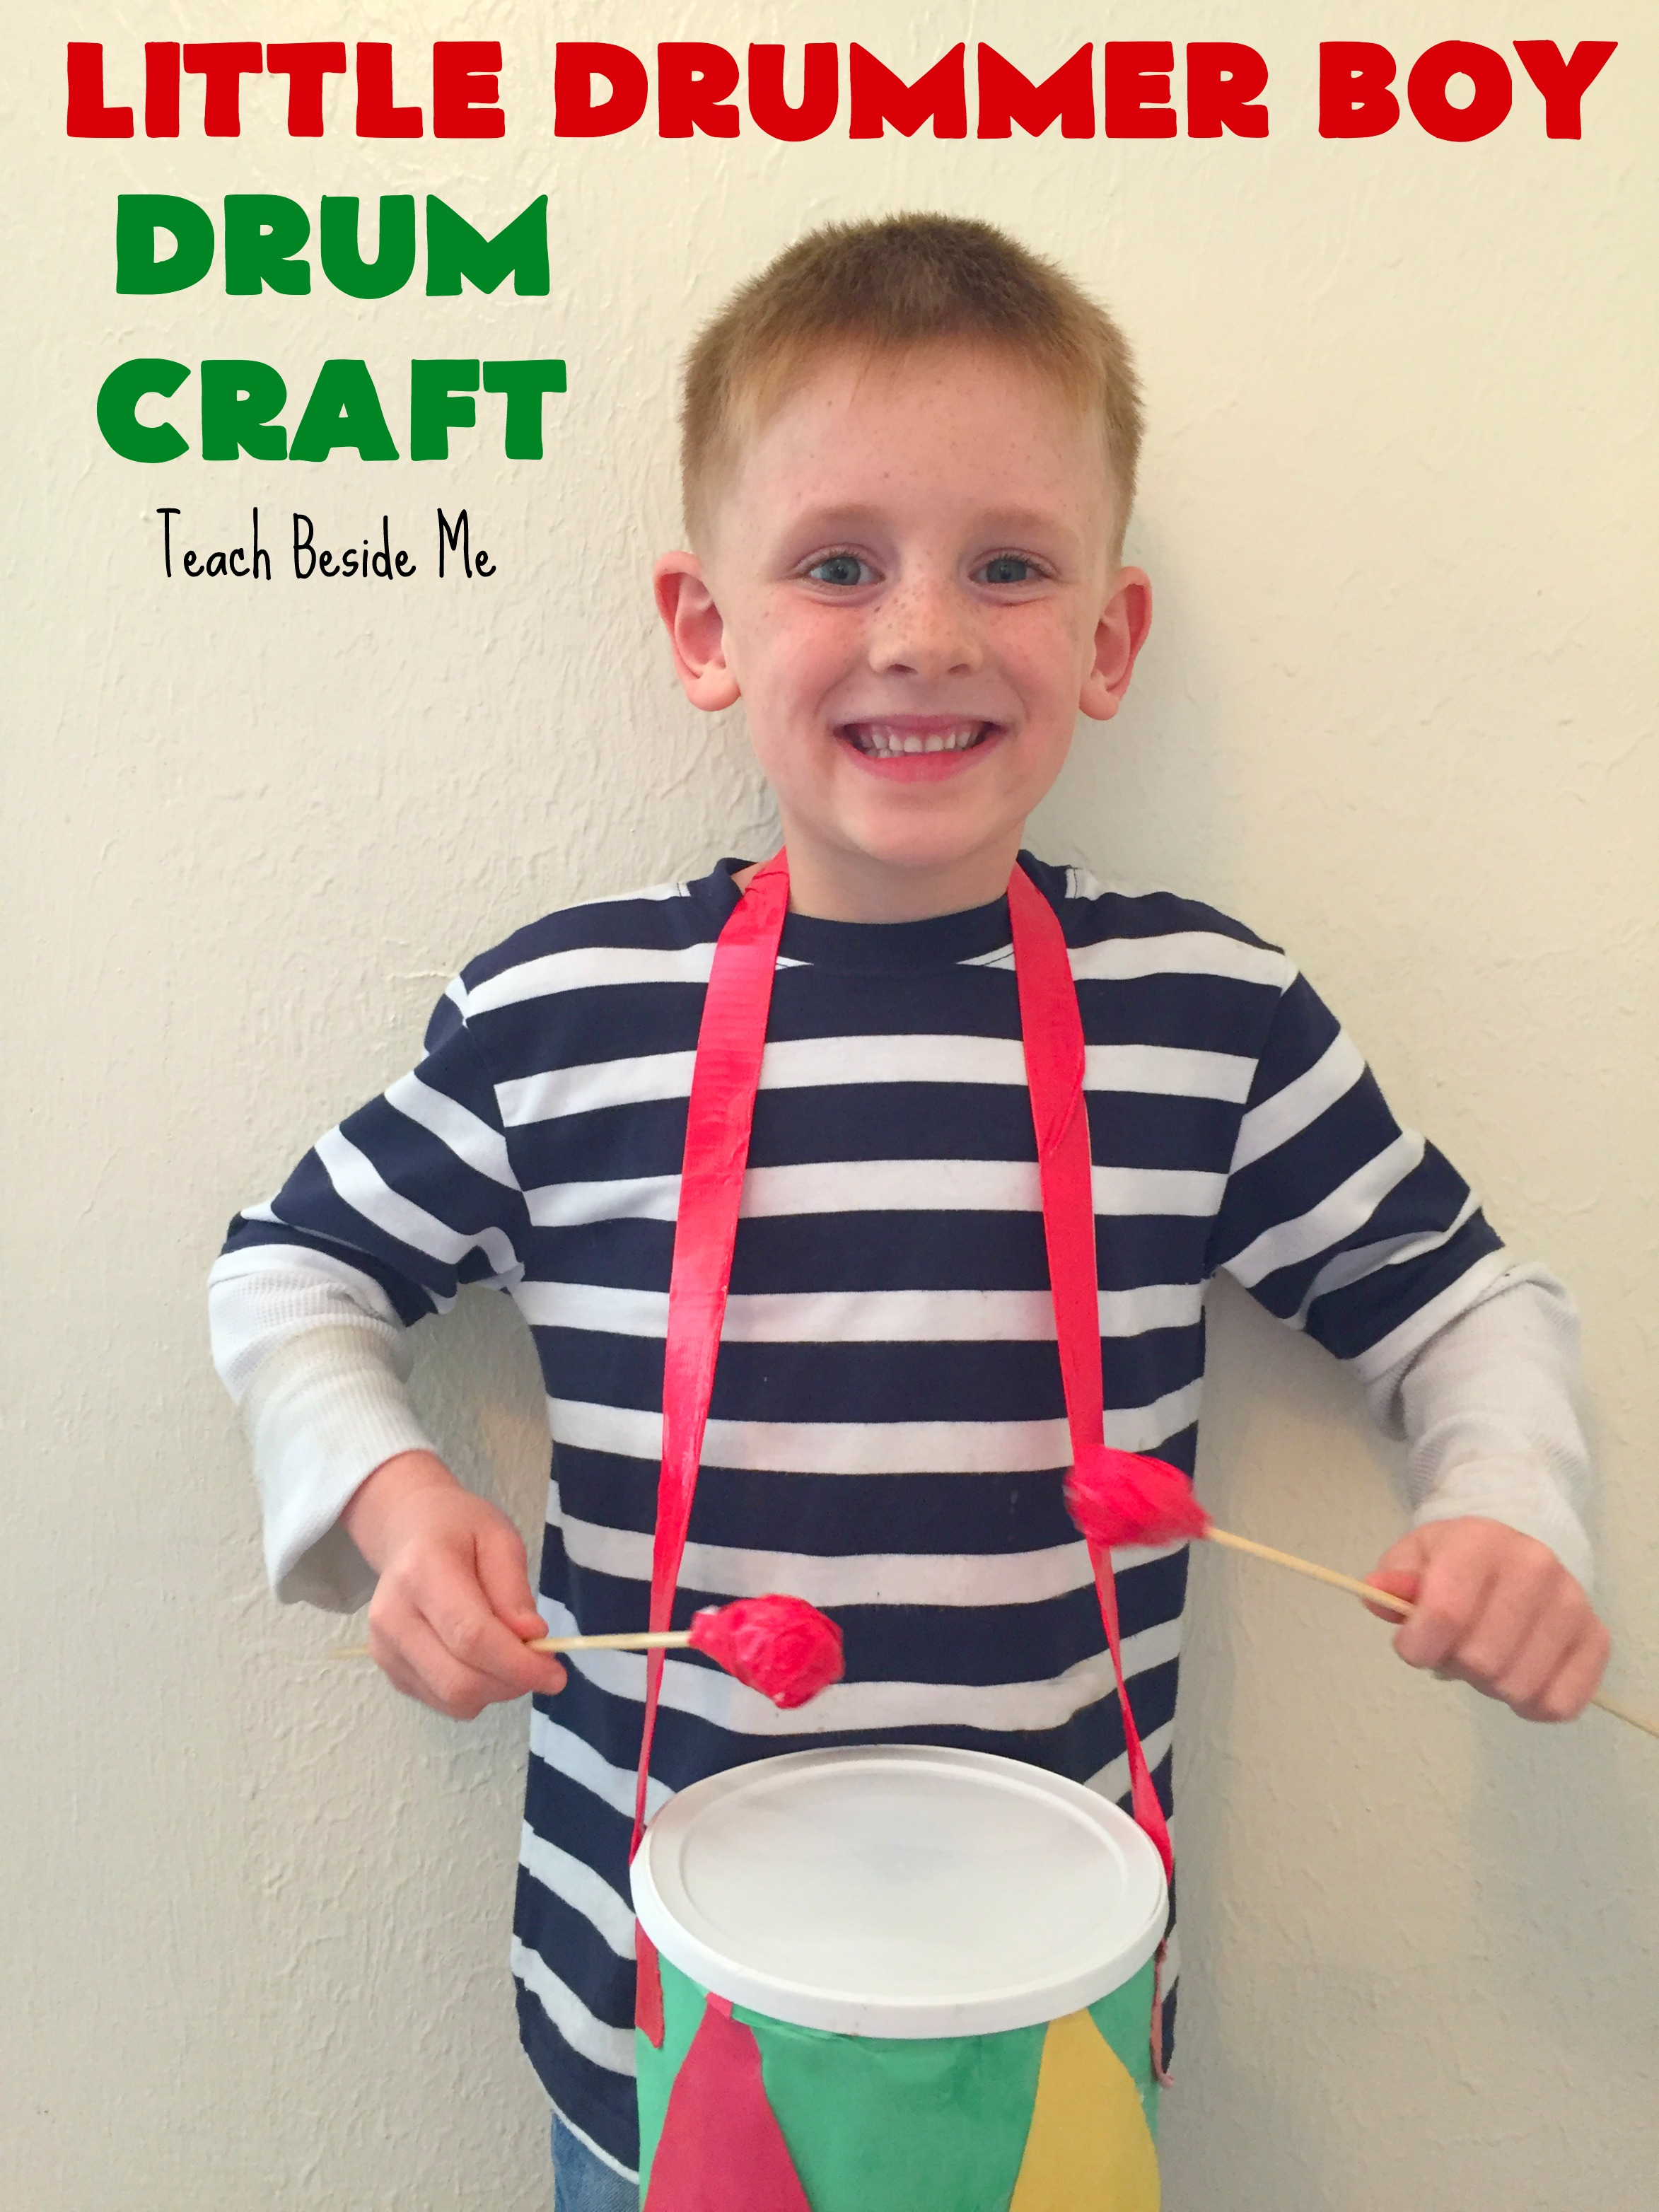 Drummer Boy Christmas Drum Craft